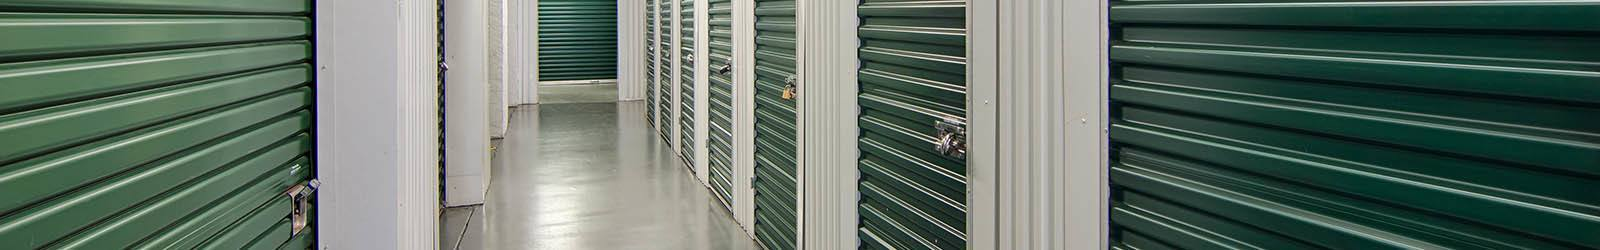 Self storage unit sizes and prices offered in Burnsville